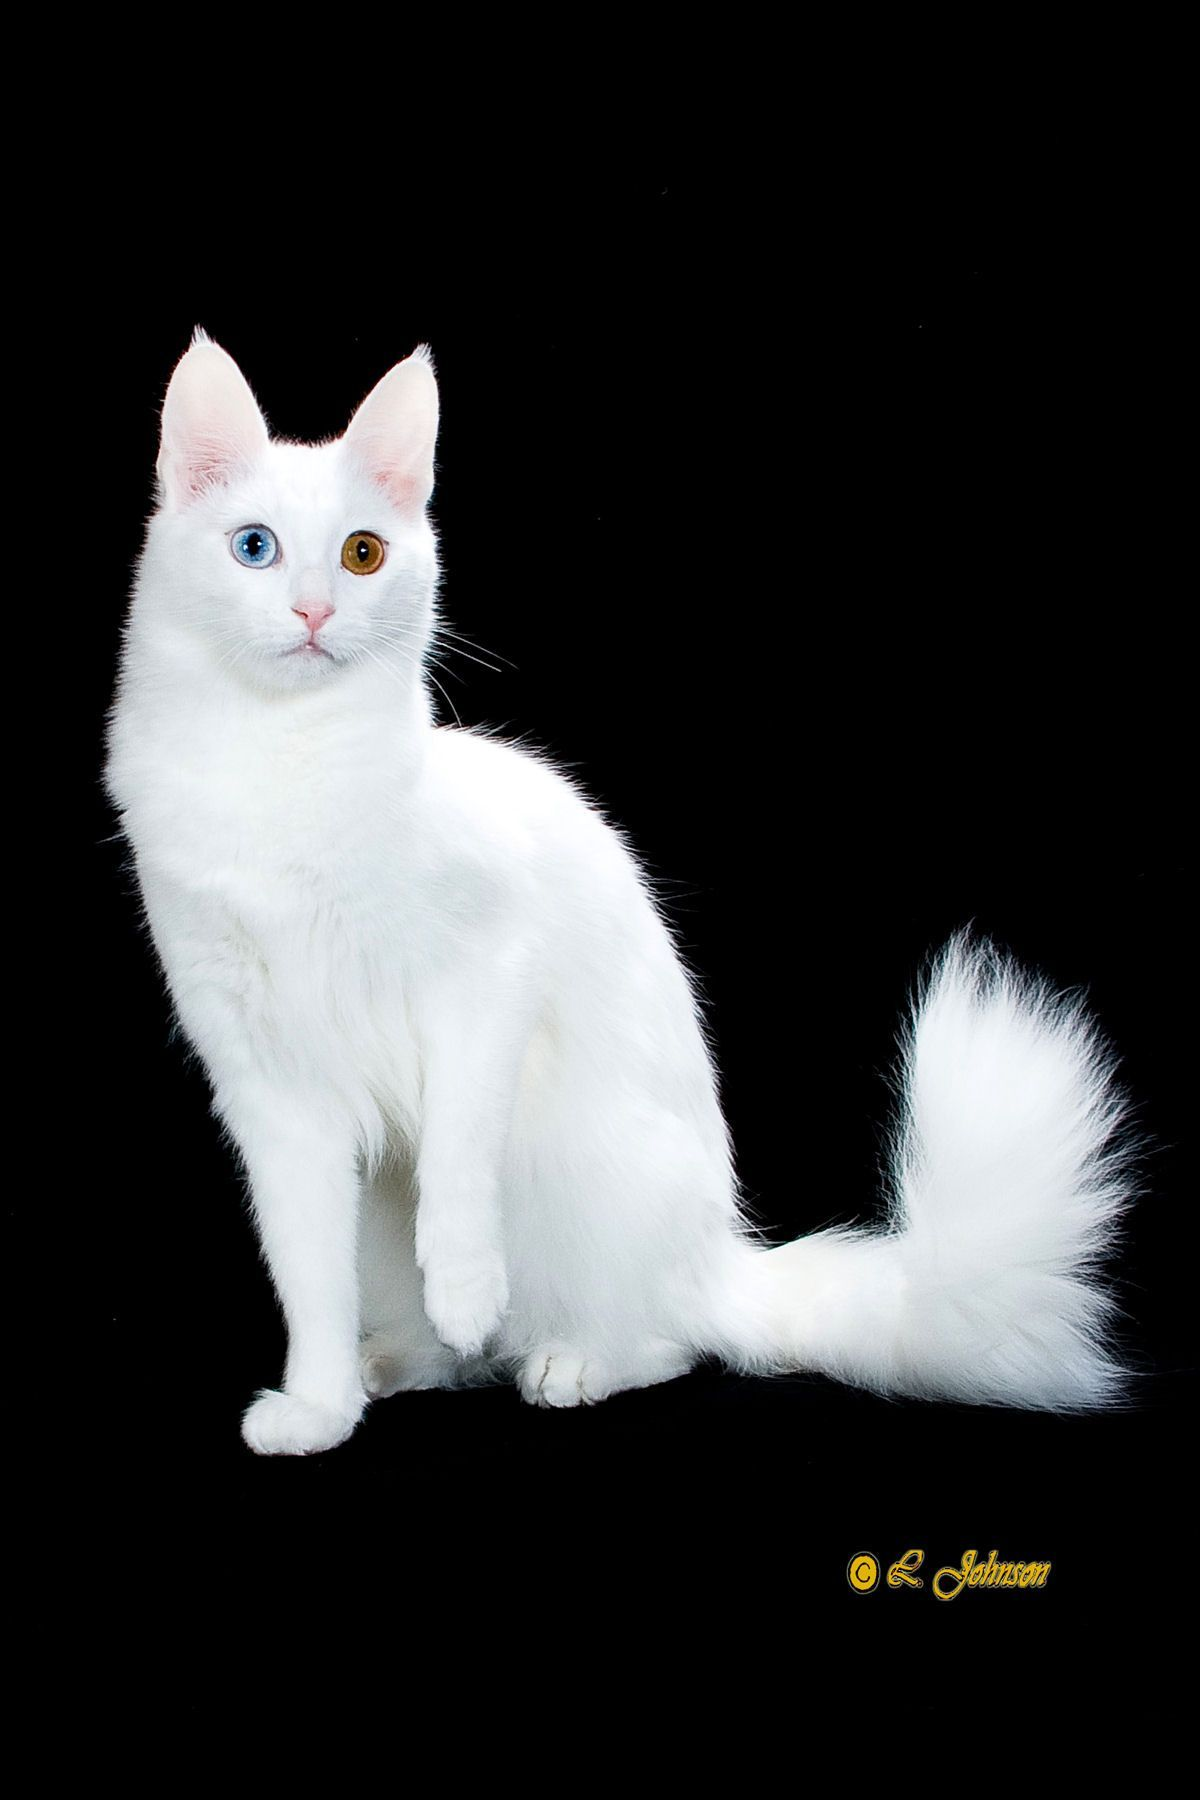 Turkish Angora This Reminds Me Of My Cat Crystal Only Her Eyes Were A Lighter Blue And Gold She Was Also Deaf Turkish Angora Cat White Cat Breeds Cat Breeds